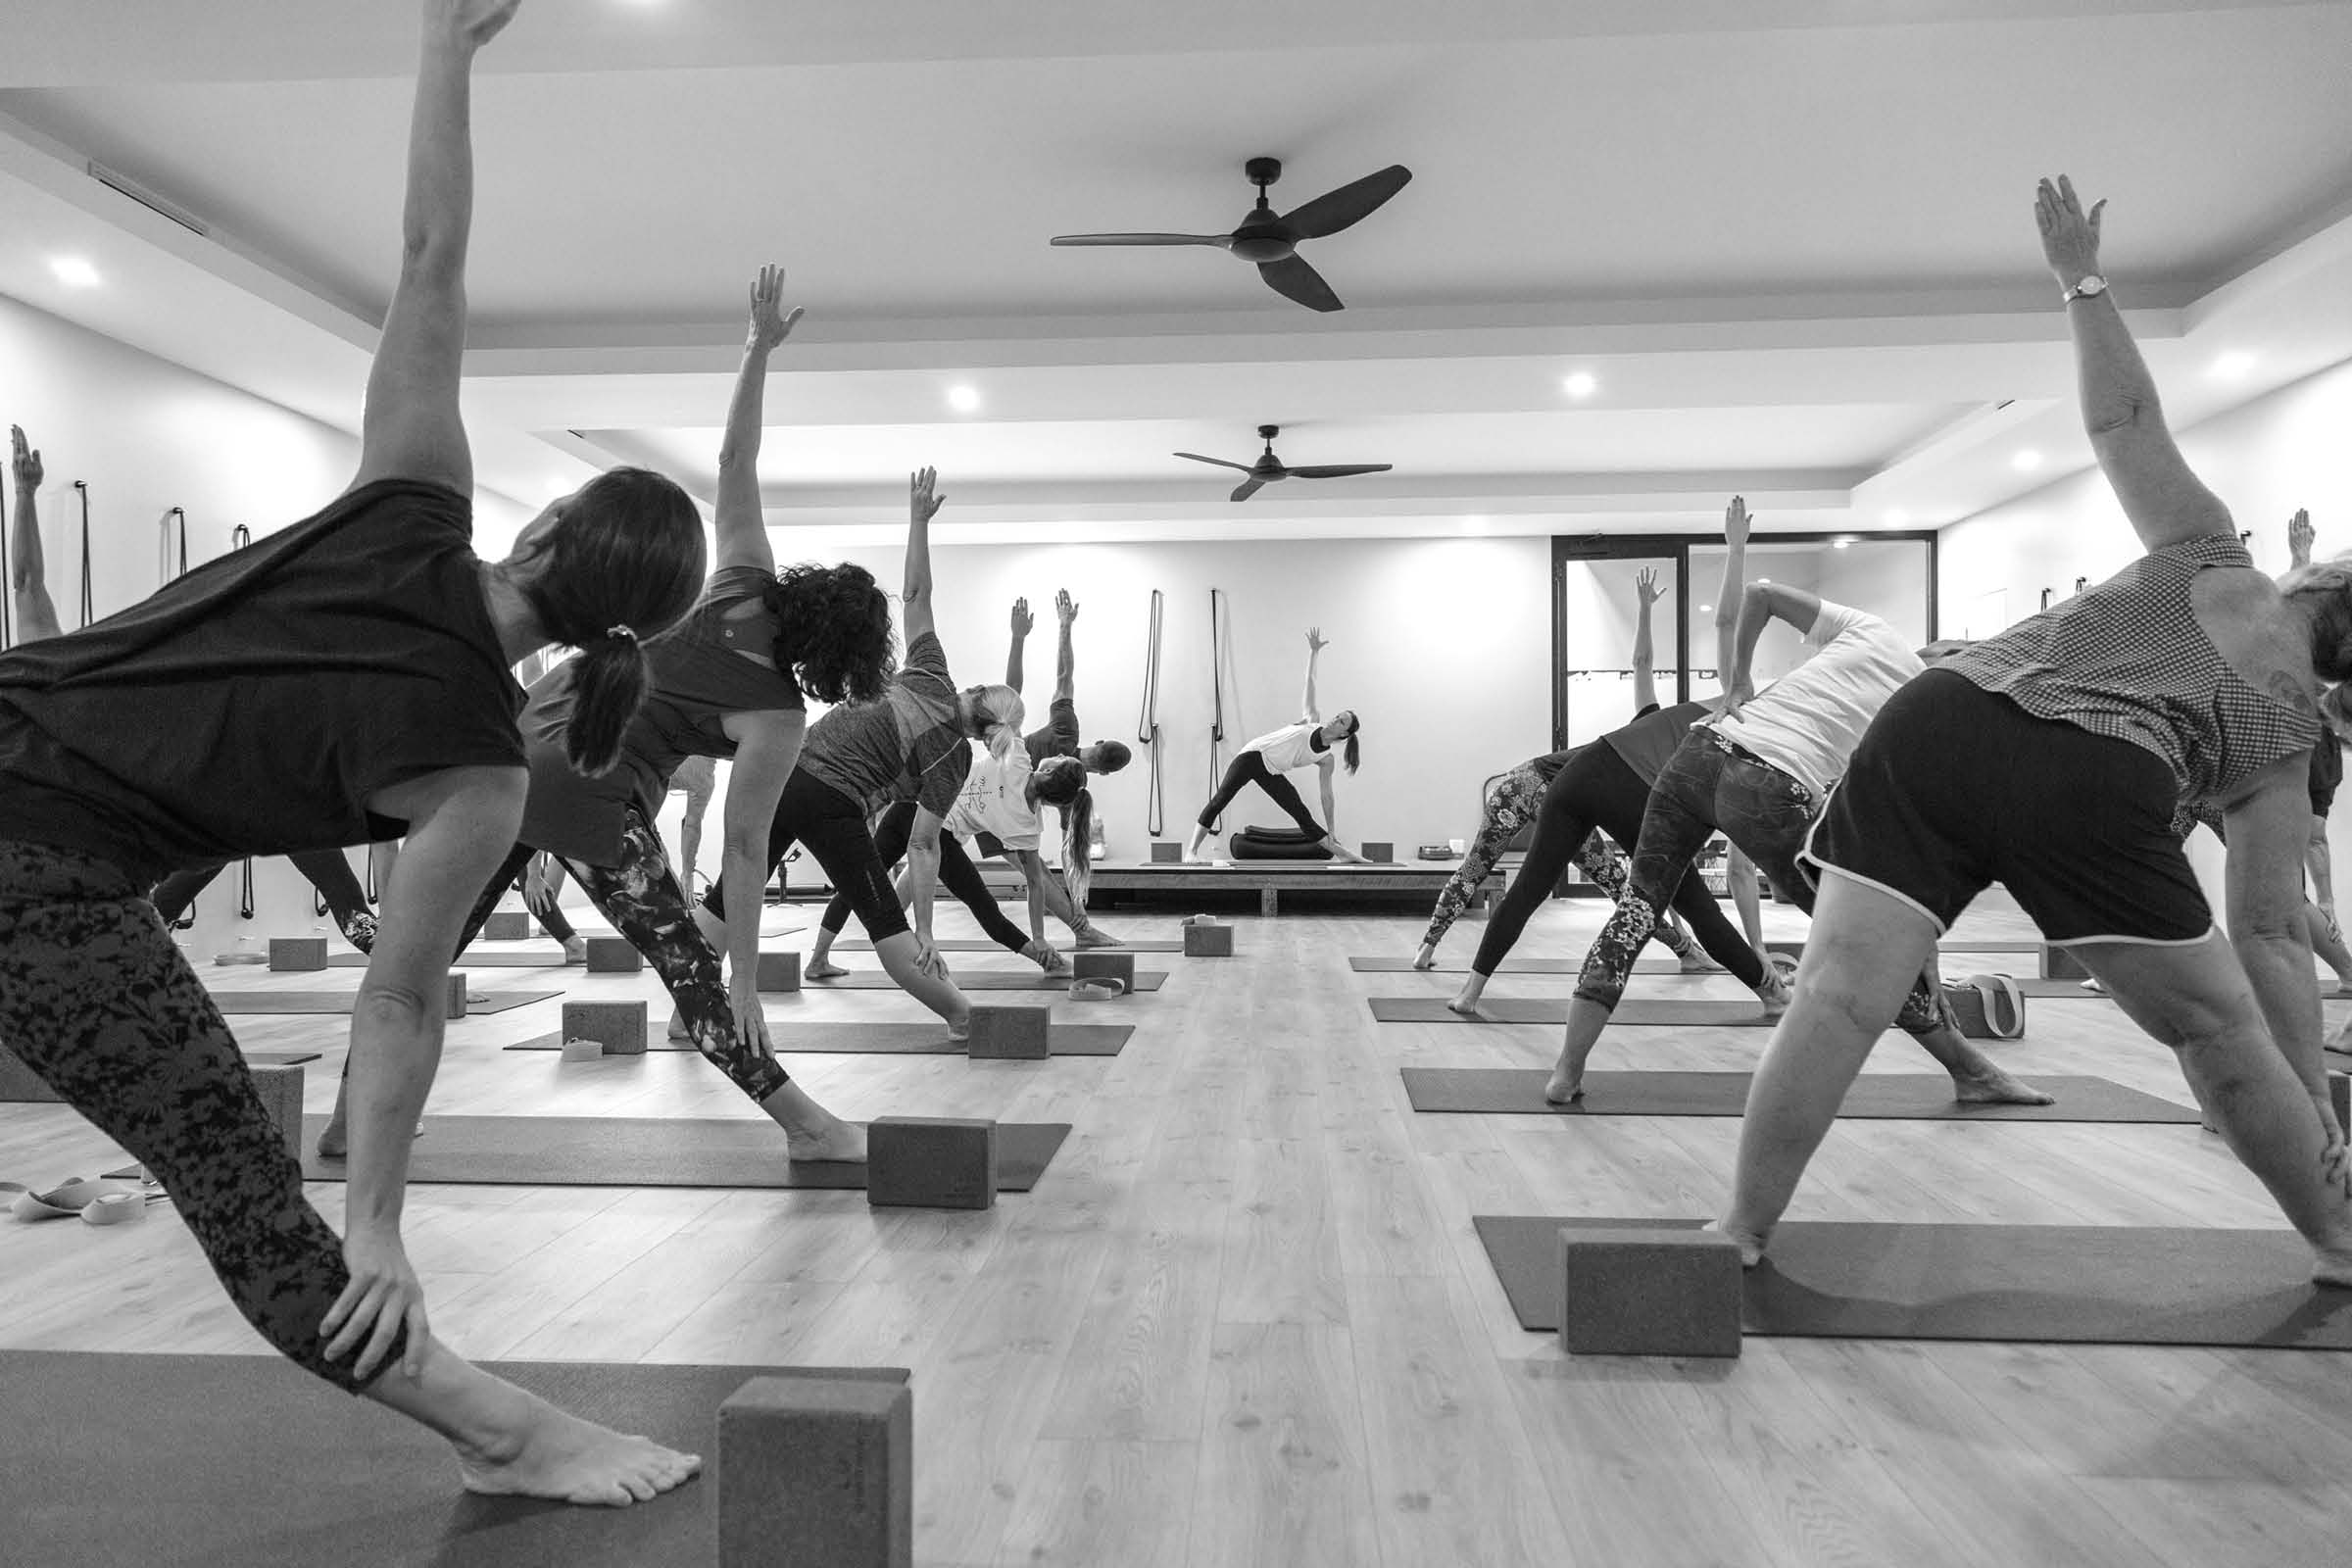 A room of yoga students participating in a class